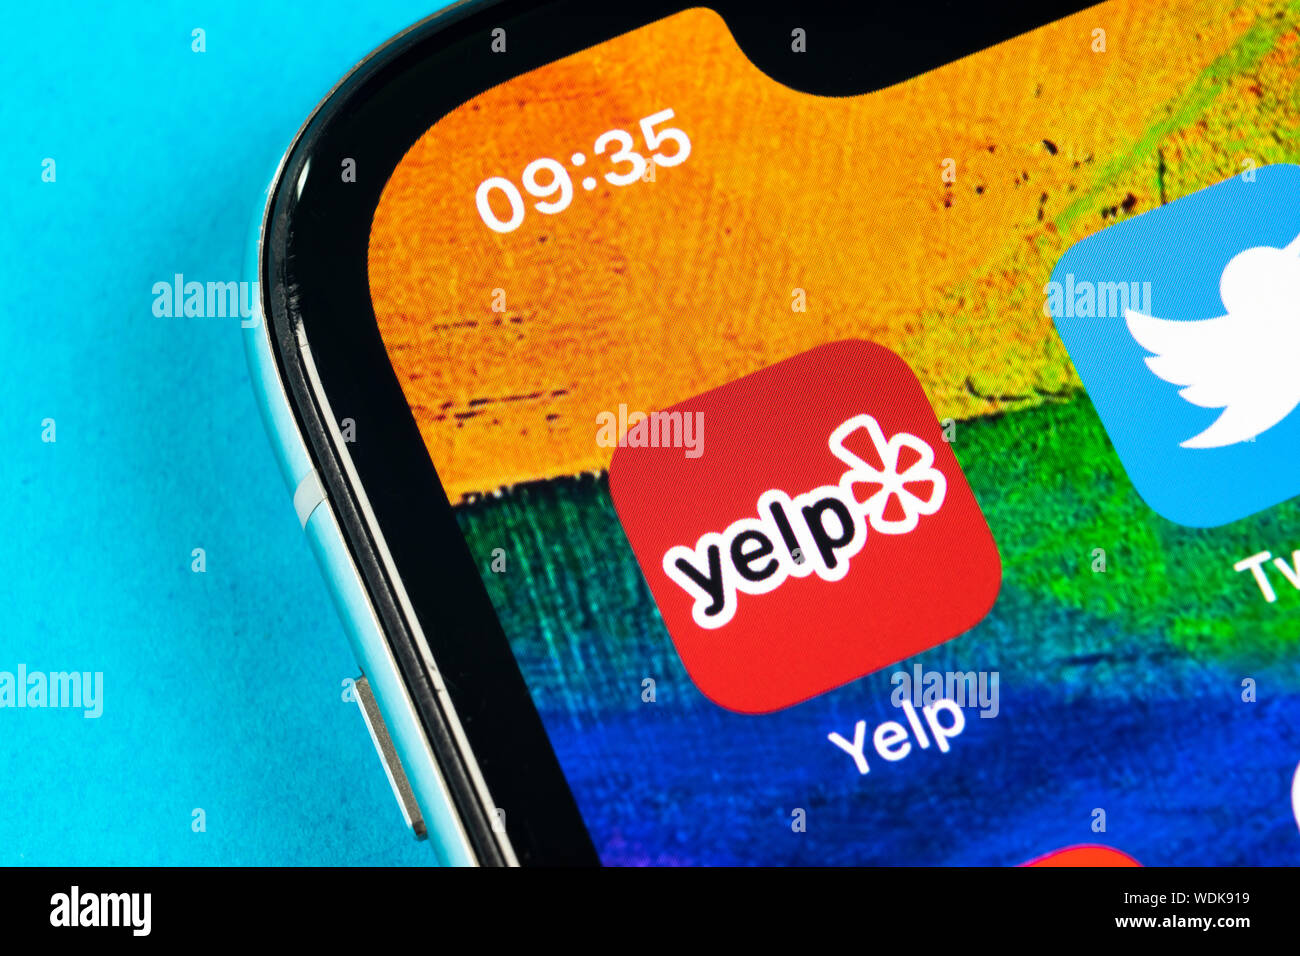 Helsinki, Finland, May 4, 2019: Yelp application icon on